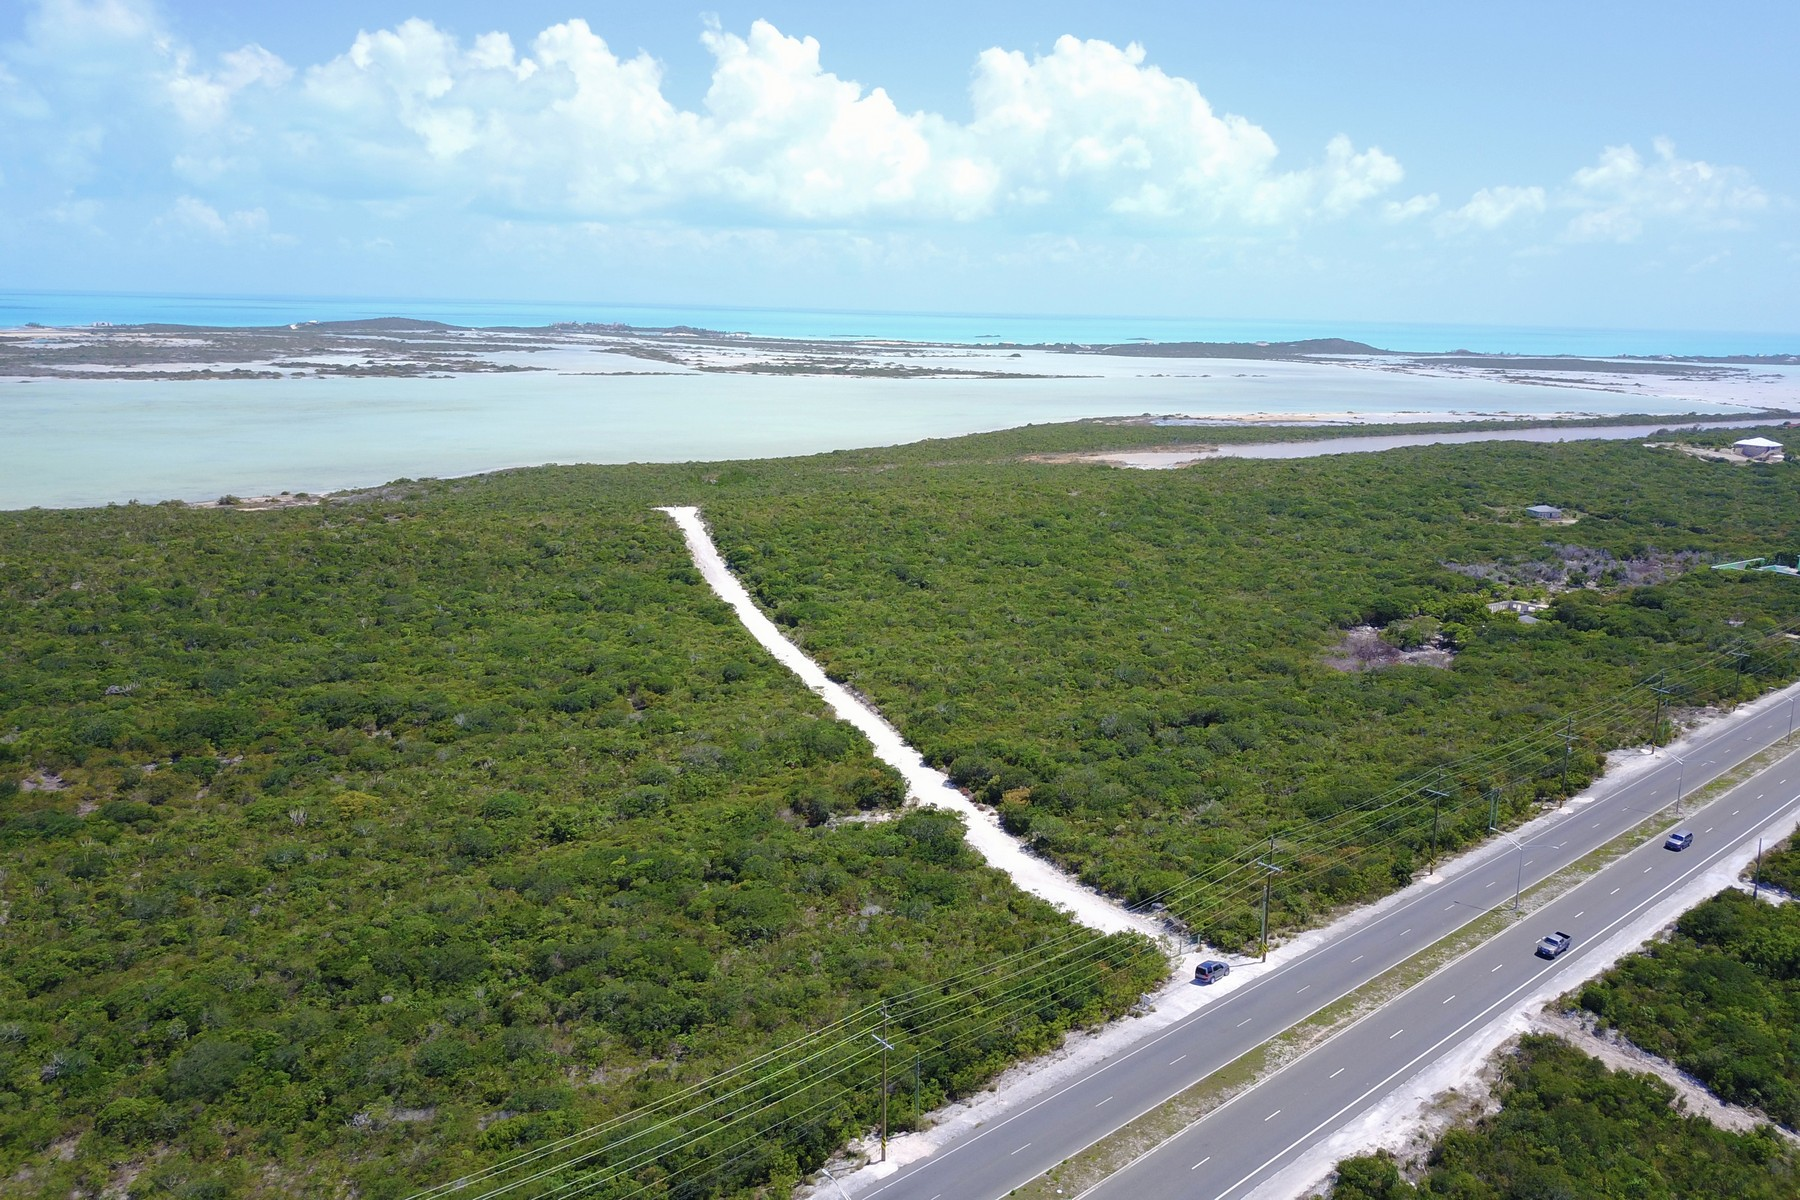 Land for Sale at Undeveloped Land Leeward Highway Leeward Highway Land The Bight, Providenciales TKCA 1ZZ Turks And Caicos Islands